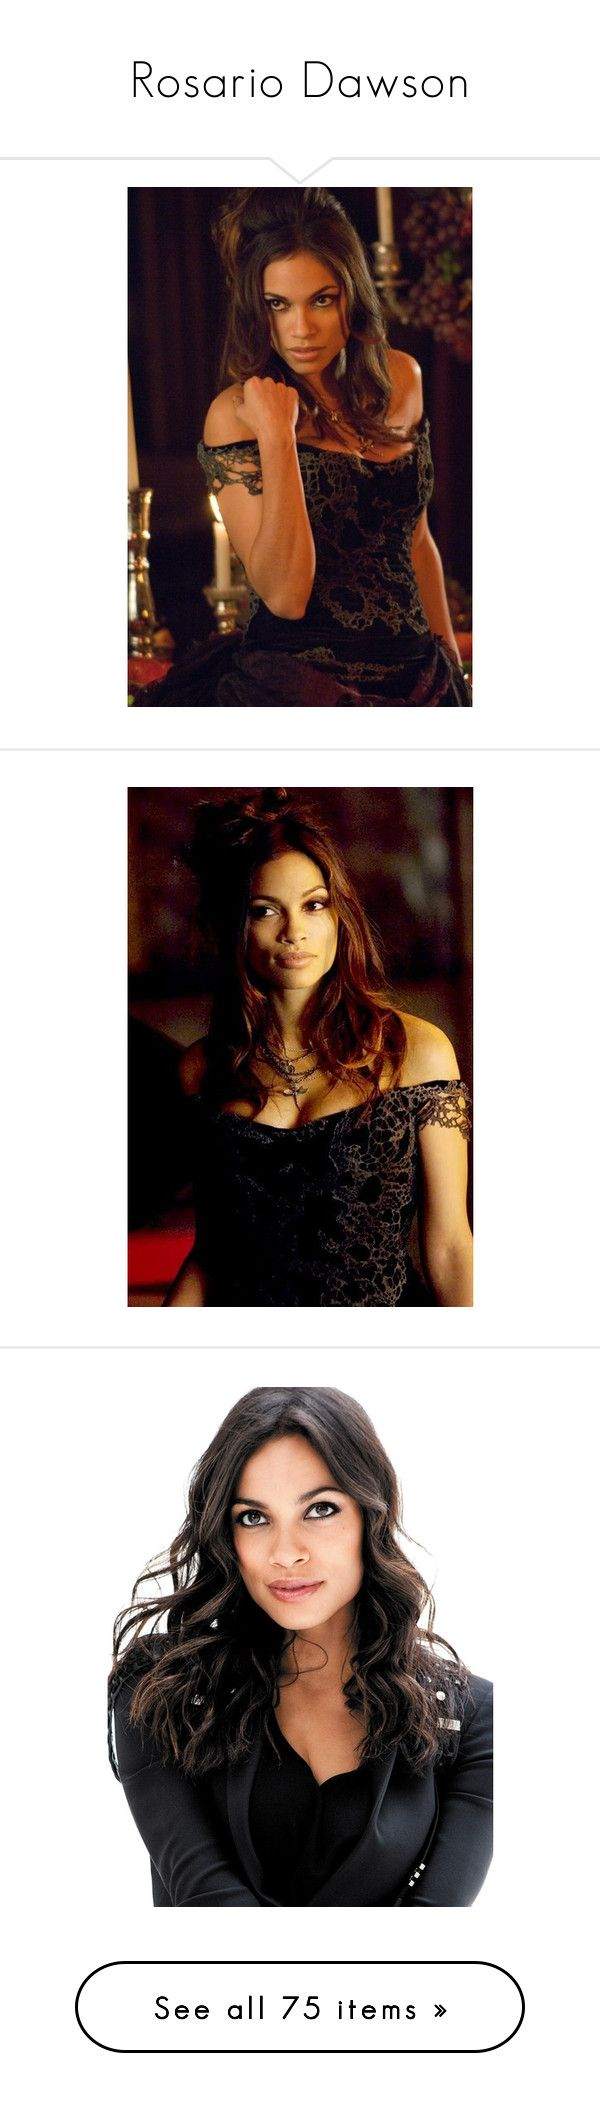 """""""Rosario Dawson"""" by nataliemcmahan ❤ liked on Polyvore featuring celeb, people, backgrounds, editorials, rosario dawson, rosario and girls"""